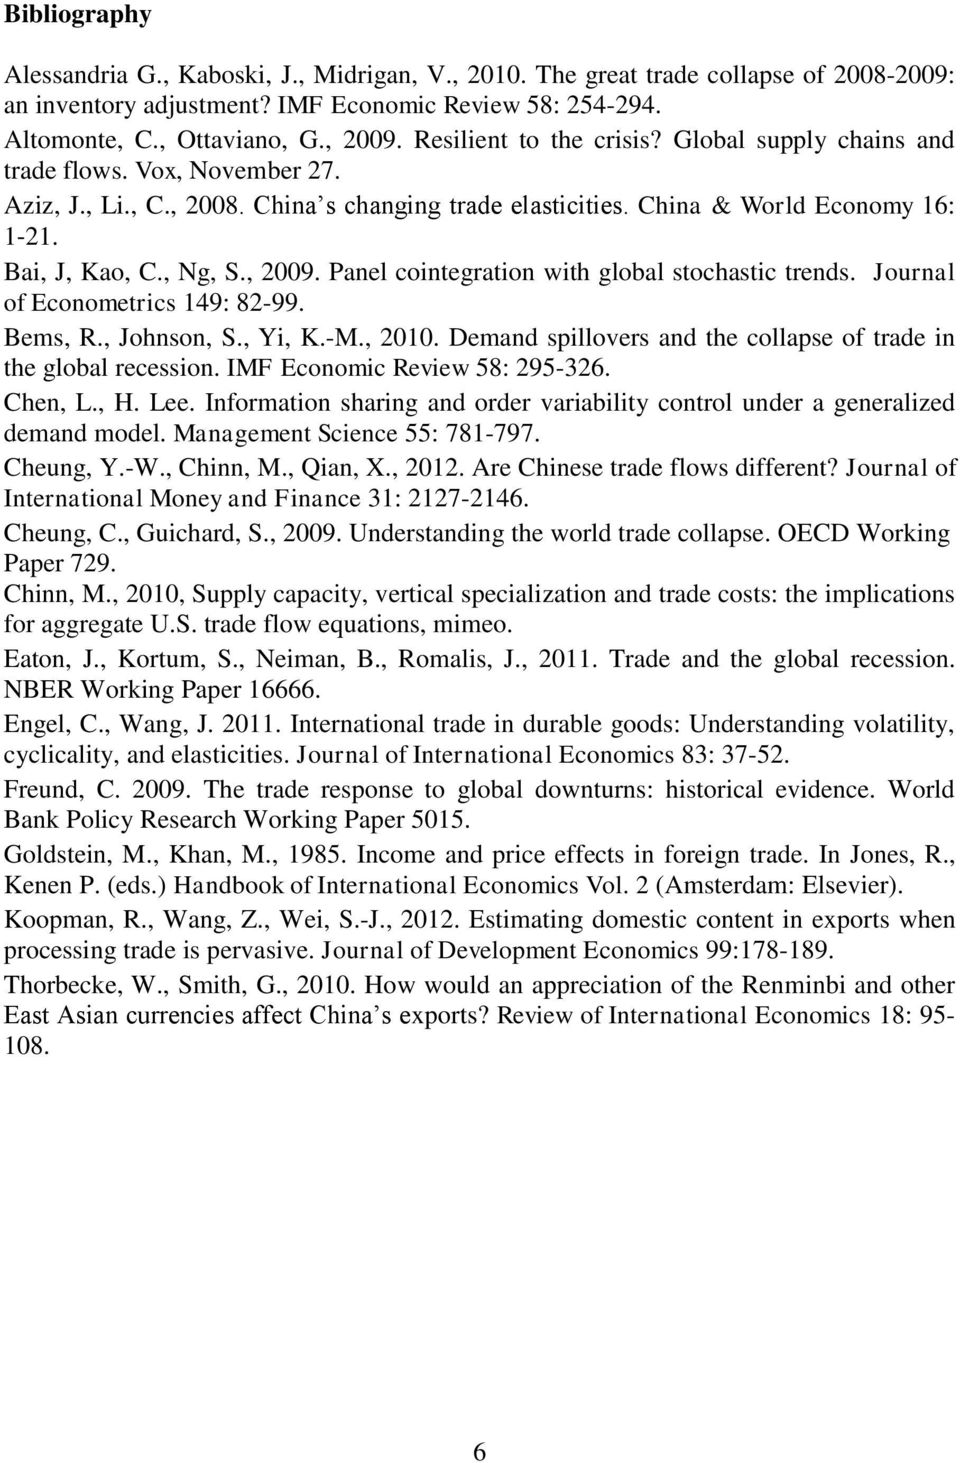 , 2009. Panel cointegration with global stochastic trends. Journal of Econometrics 149: 82-99. Bems, R., Johnson, S., Yi, K.-M., 2010.